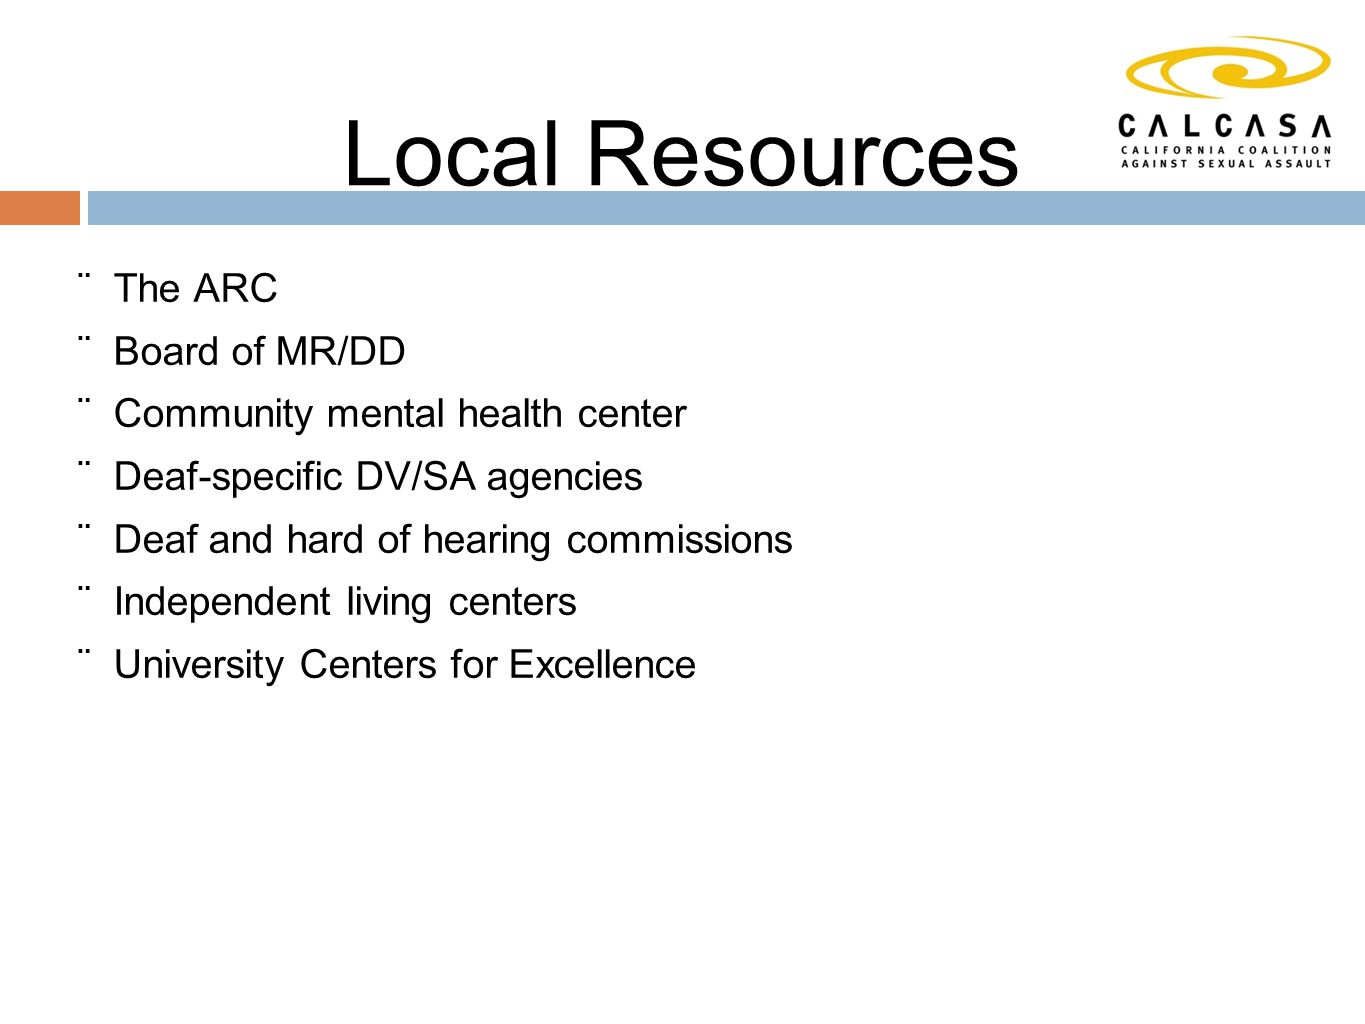 Local Resources  The ARC  Board of MR/DD  Community mental health center  Deaf-specific DV/SA agencies  Deaf and hard of hearing commissions  Independent living centers  University Centers for Excellence